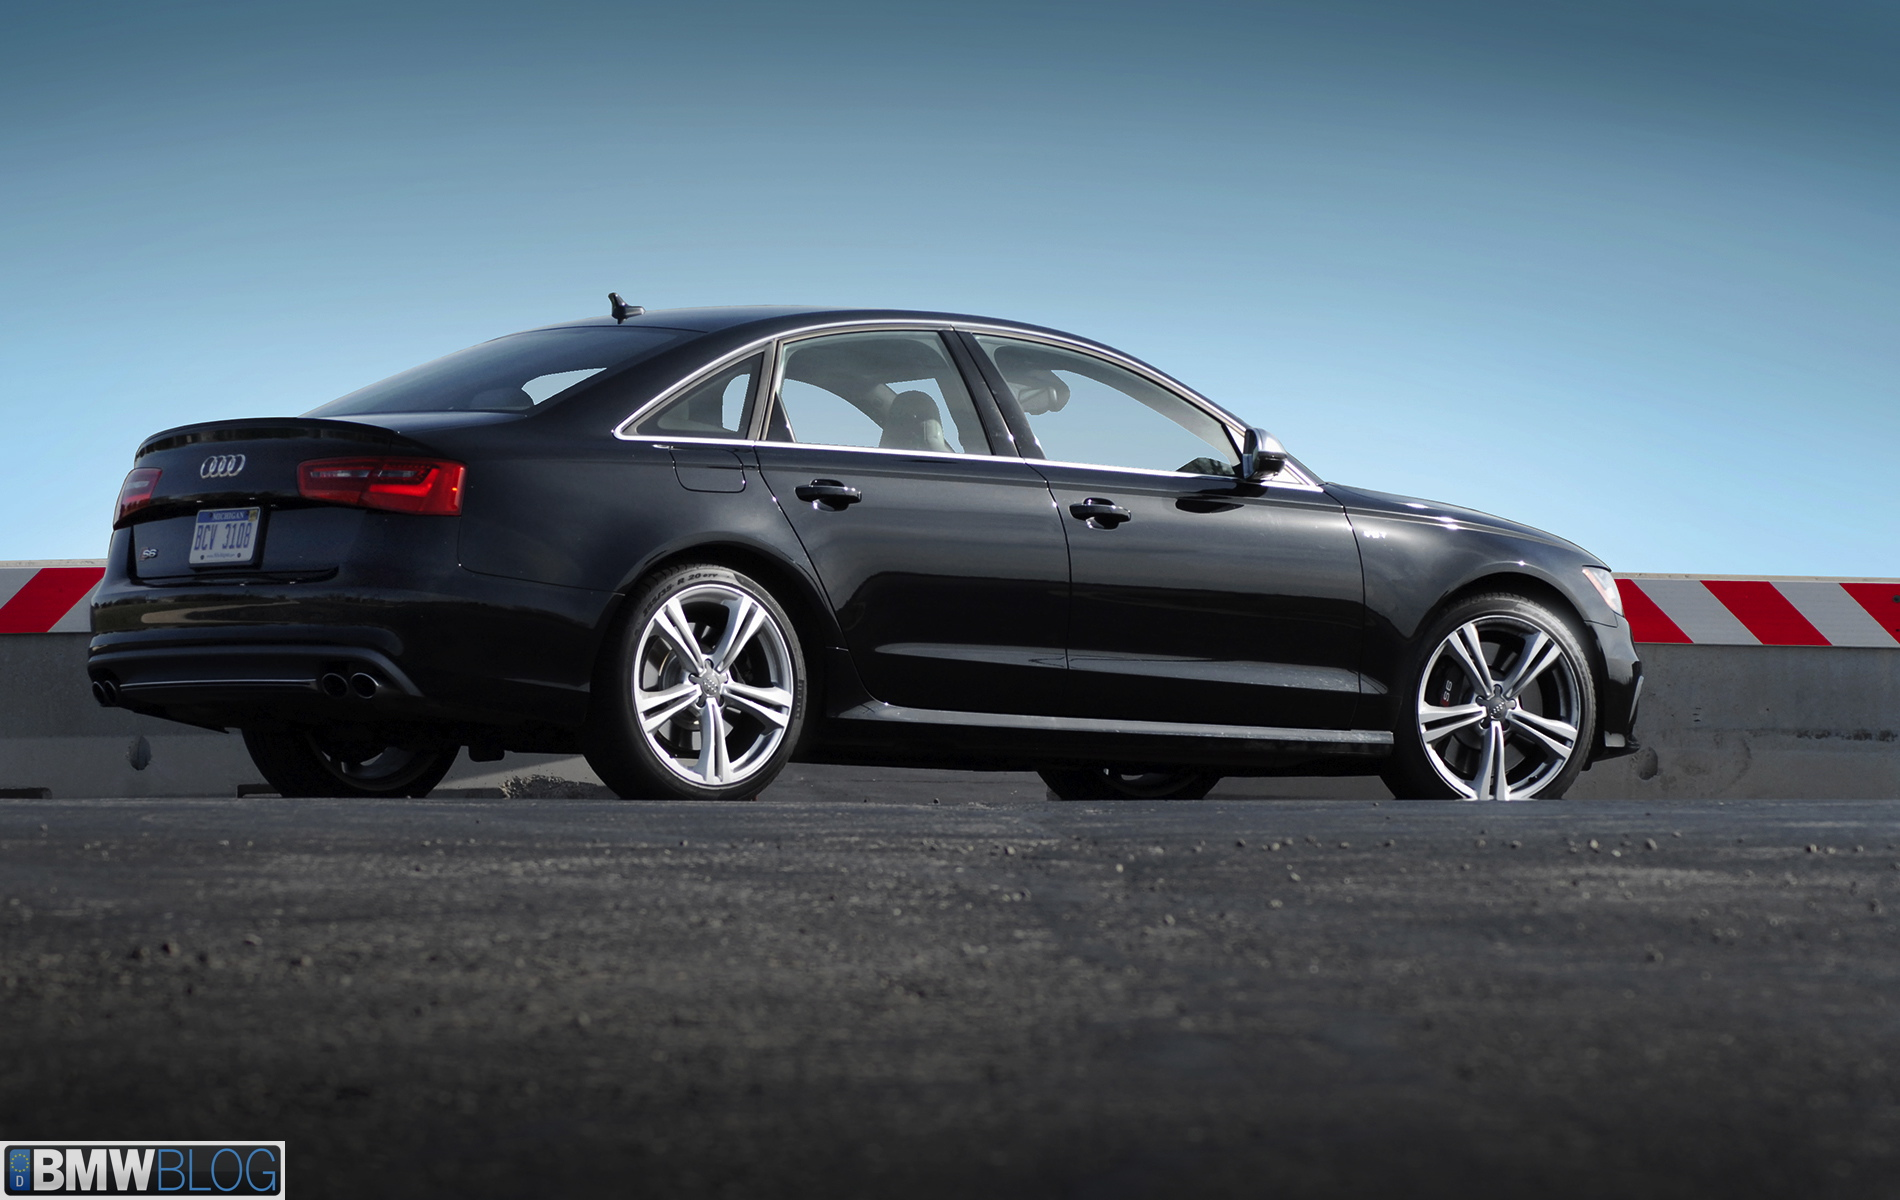 2013 audi s6 test drive and review. Black Bedroom Furniture Sets. Home Design Ideas